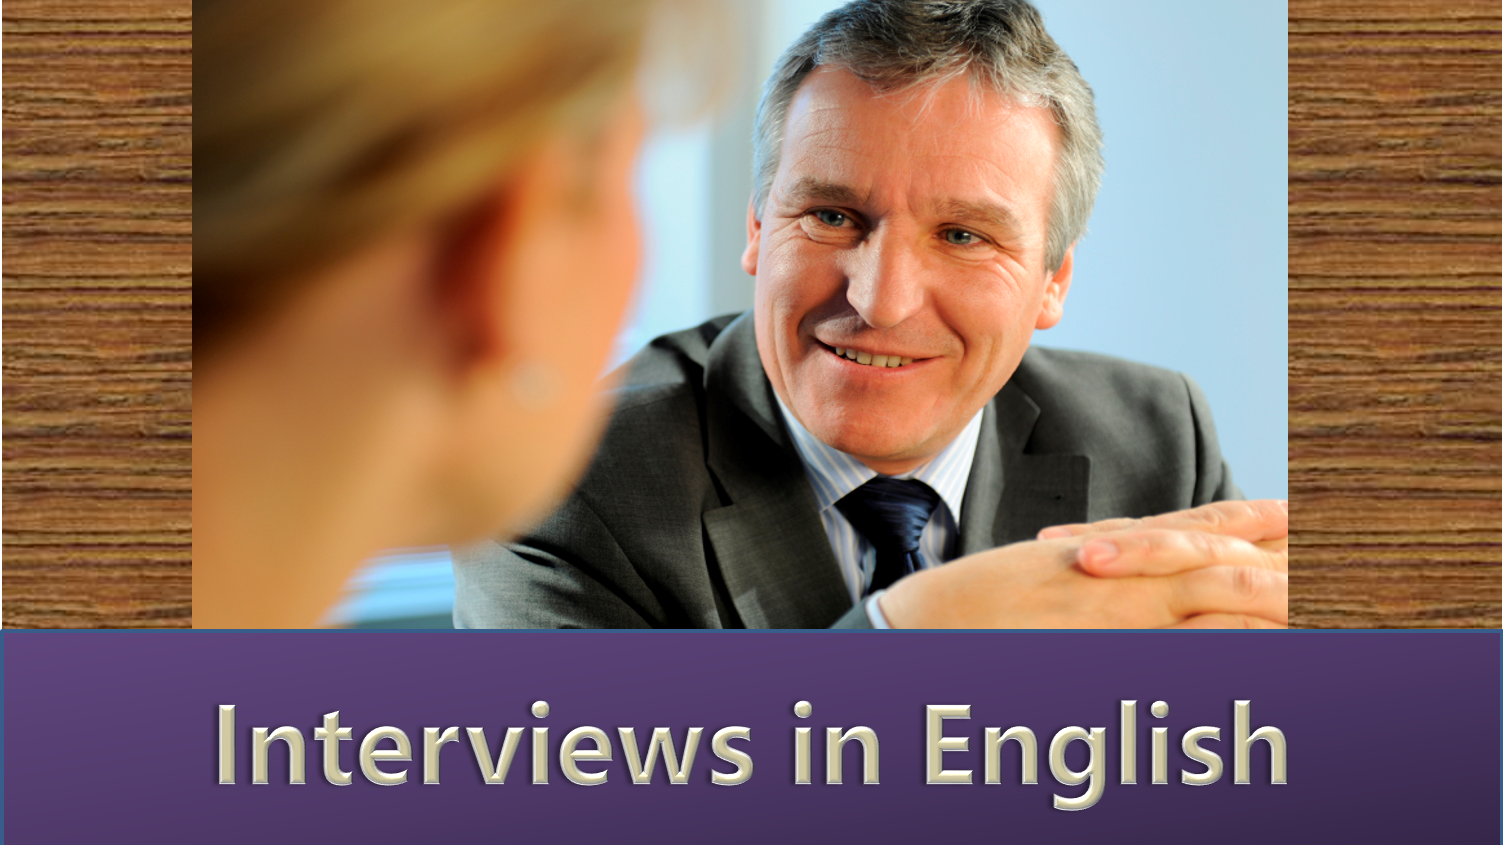 如何用英語面試 Learn job interviews in English